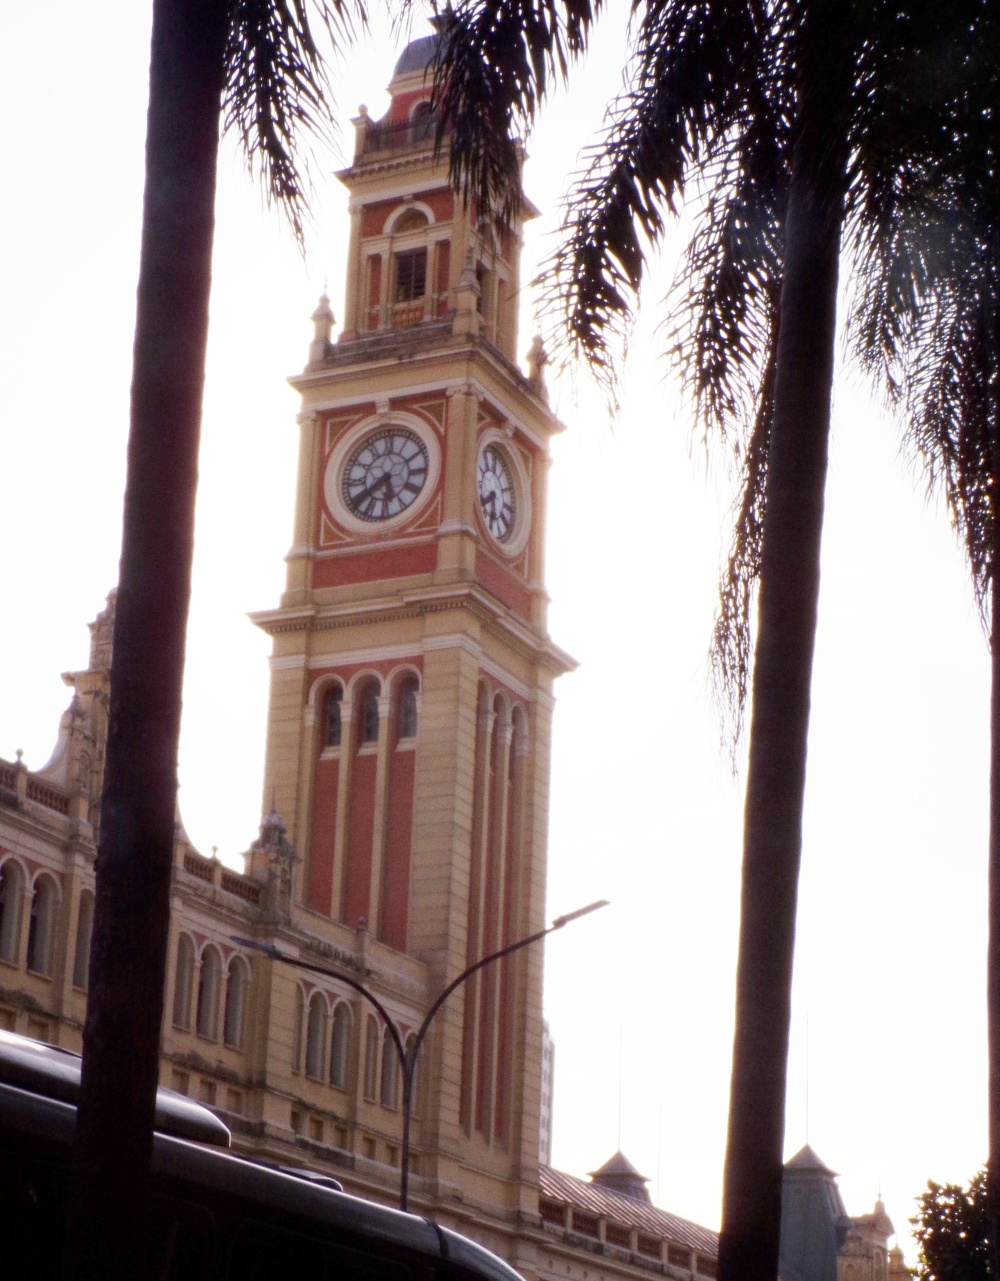 Clock tower at Luz station